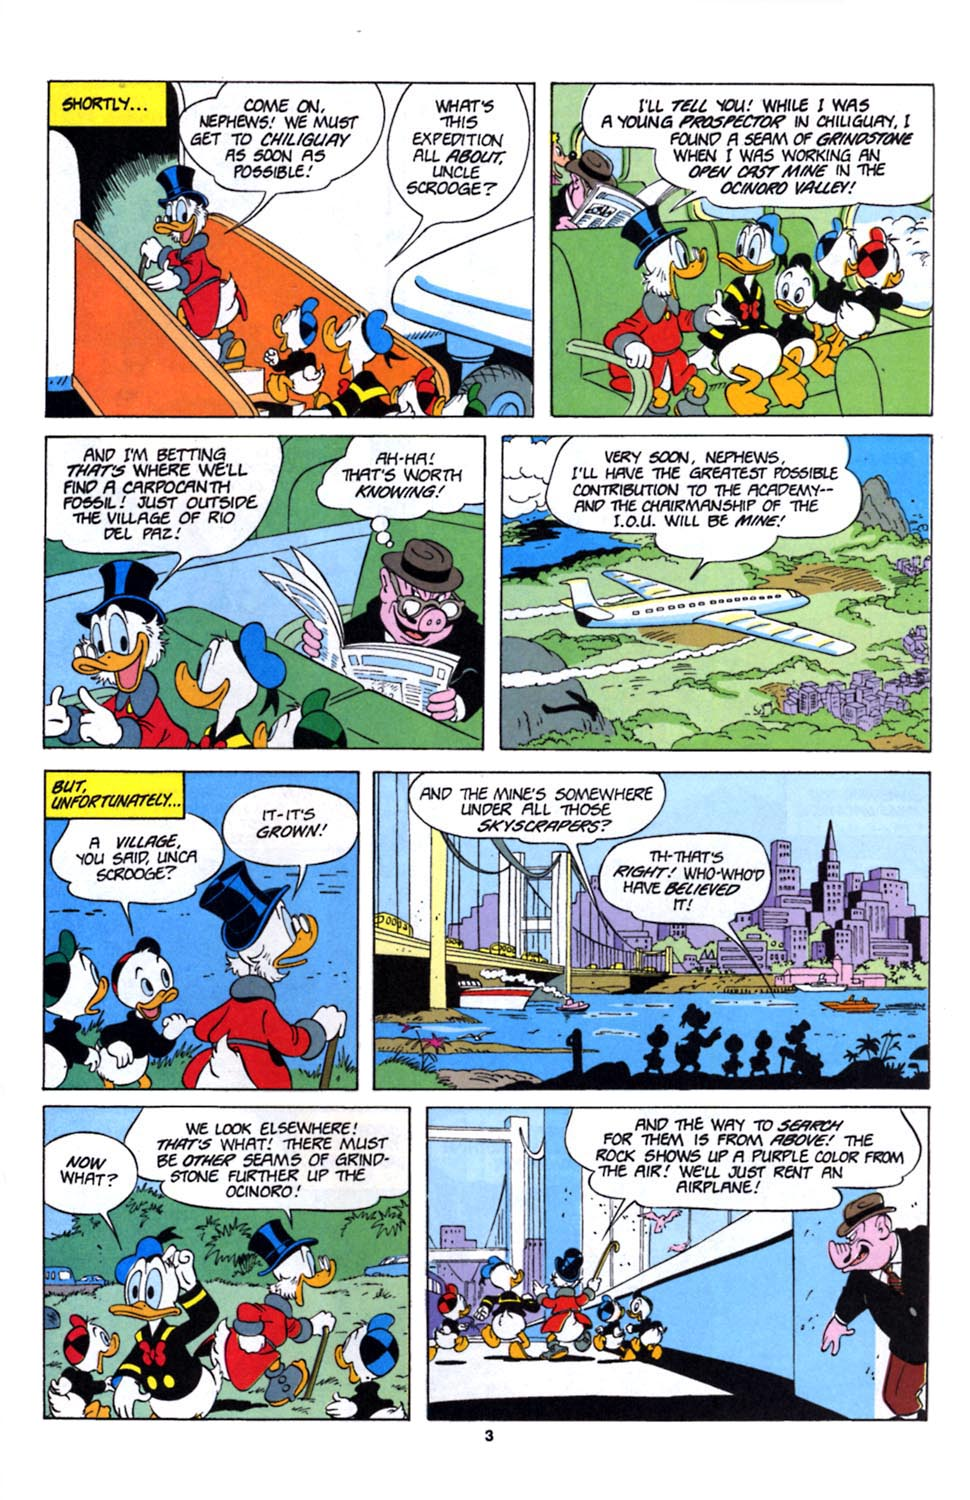 inefree.com/uncle-scrooge #162 - English 19